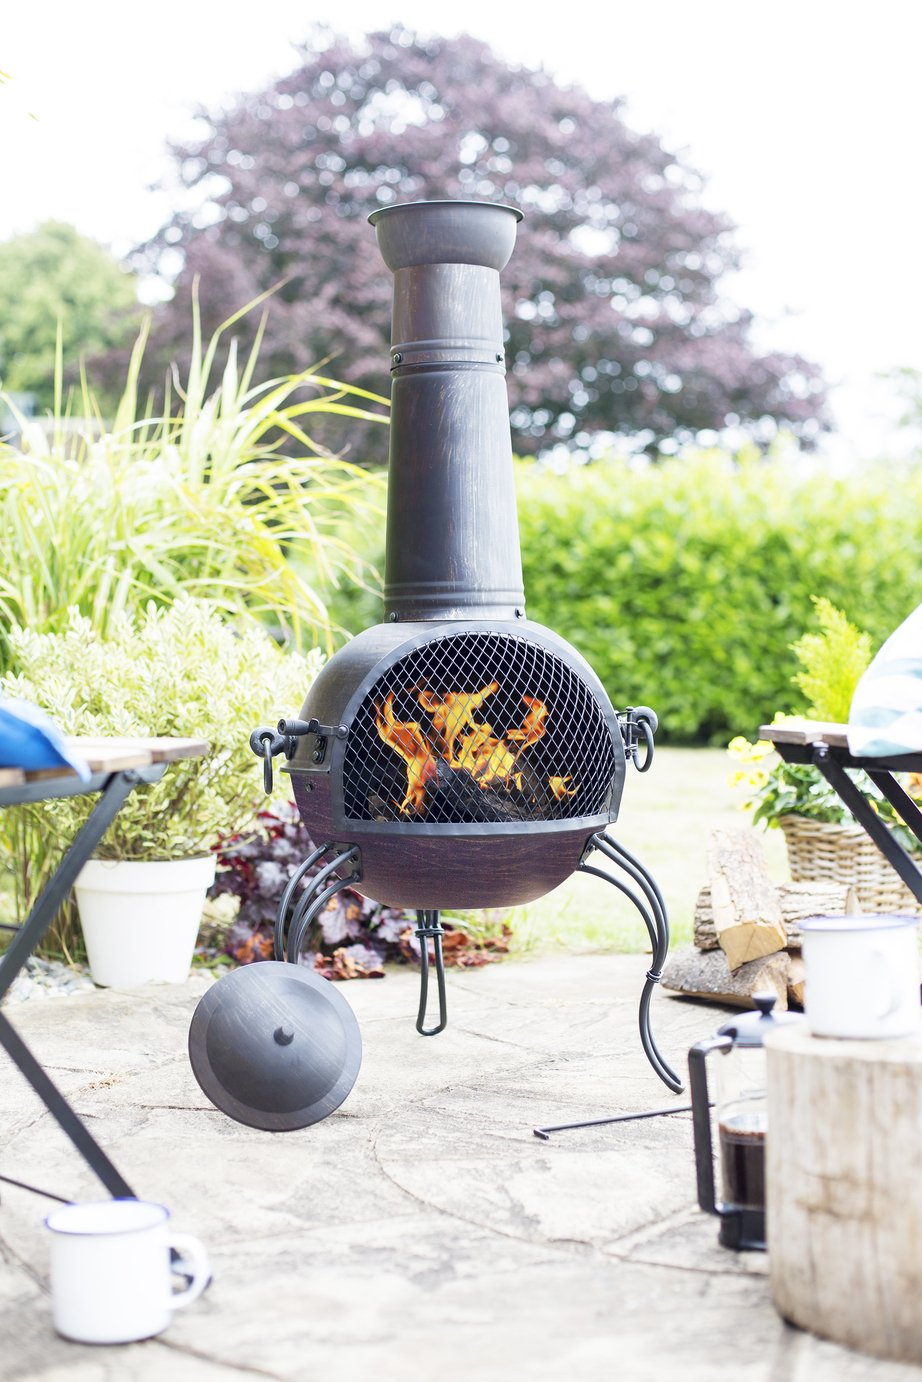 Image of La Hacienda - Extra Large Steel Chiminea - Bronze Finish